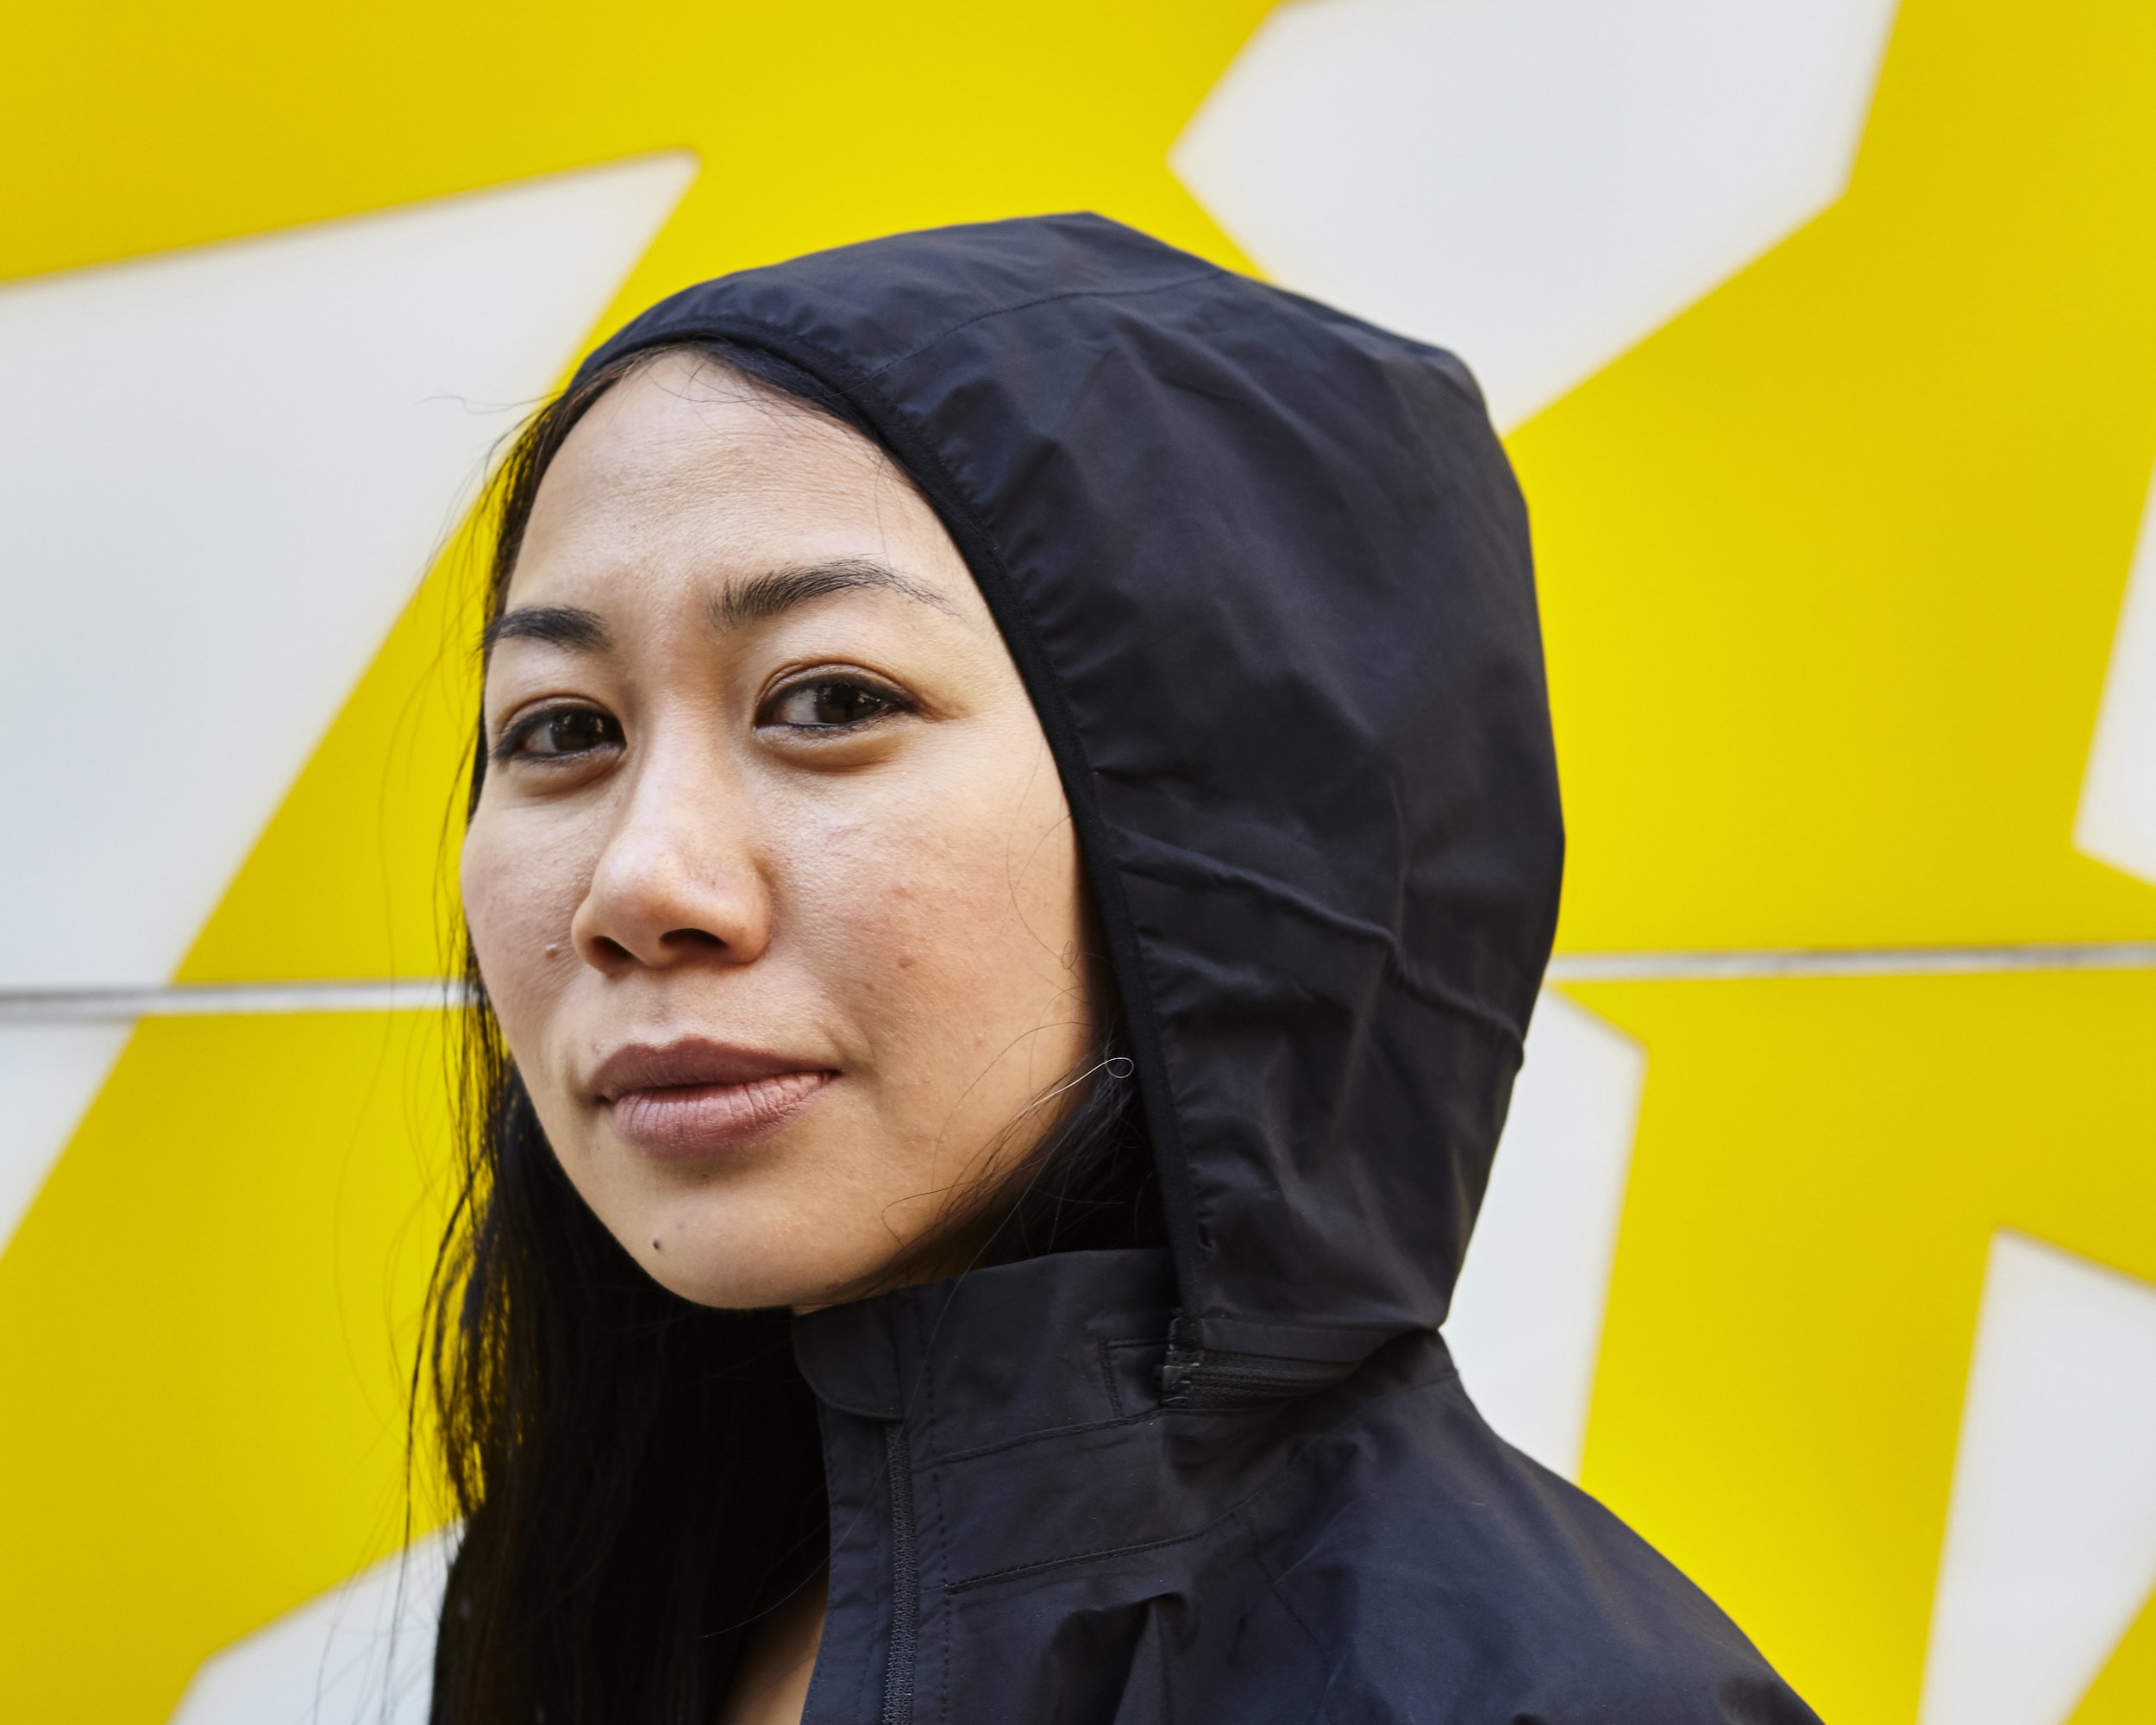 Windbreaker: Nike, All images by  Kelly Marshall .